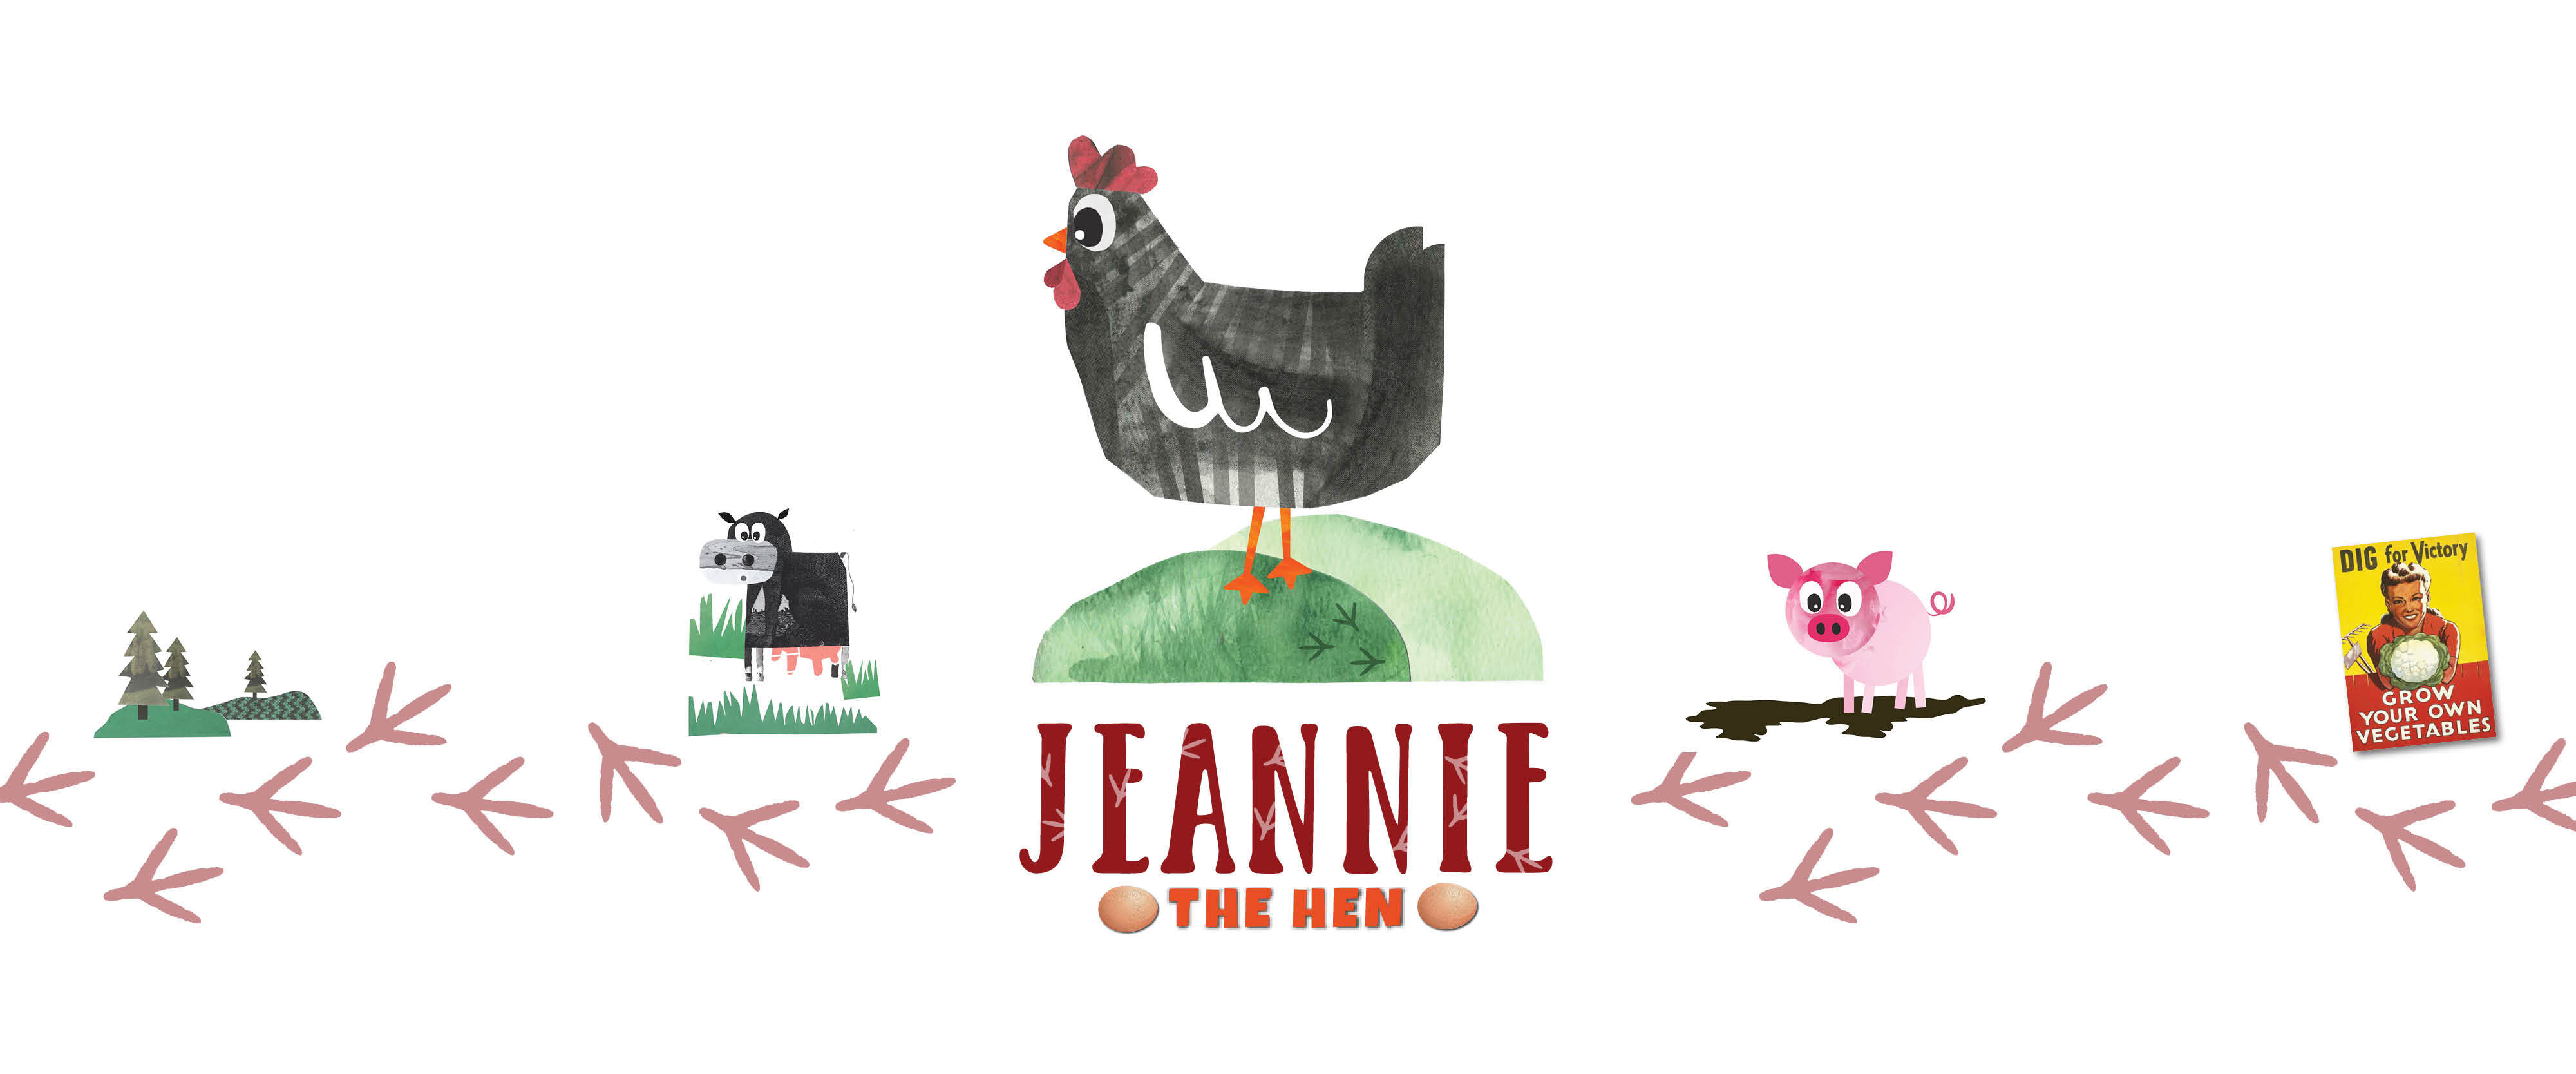 Jeannie's Adventure to the Countryside